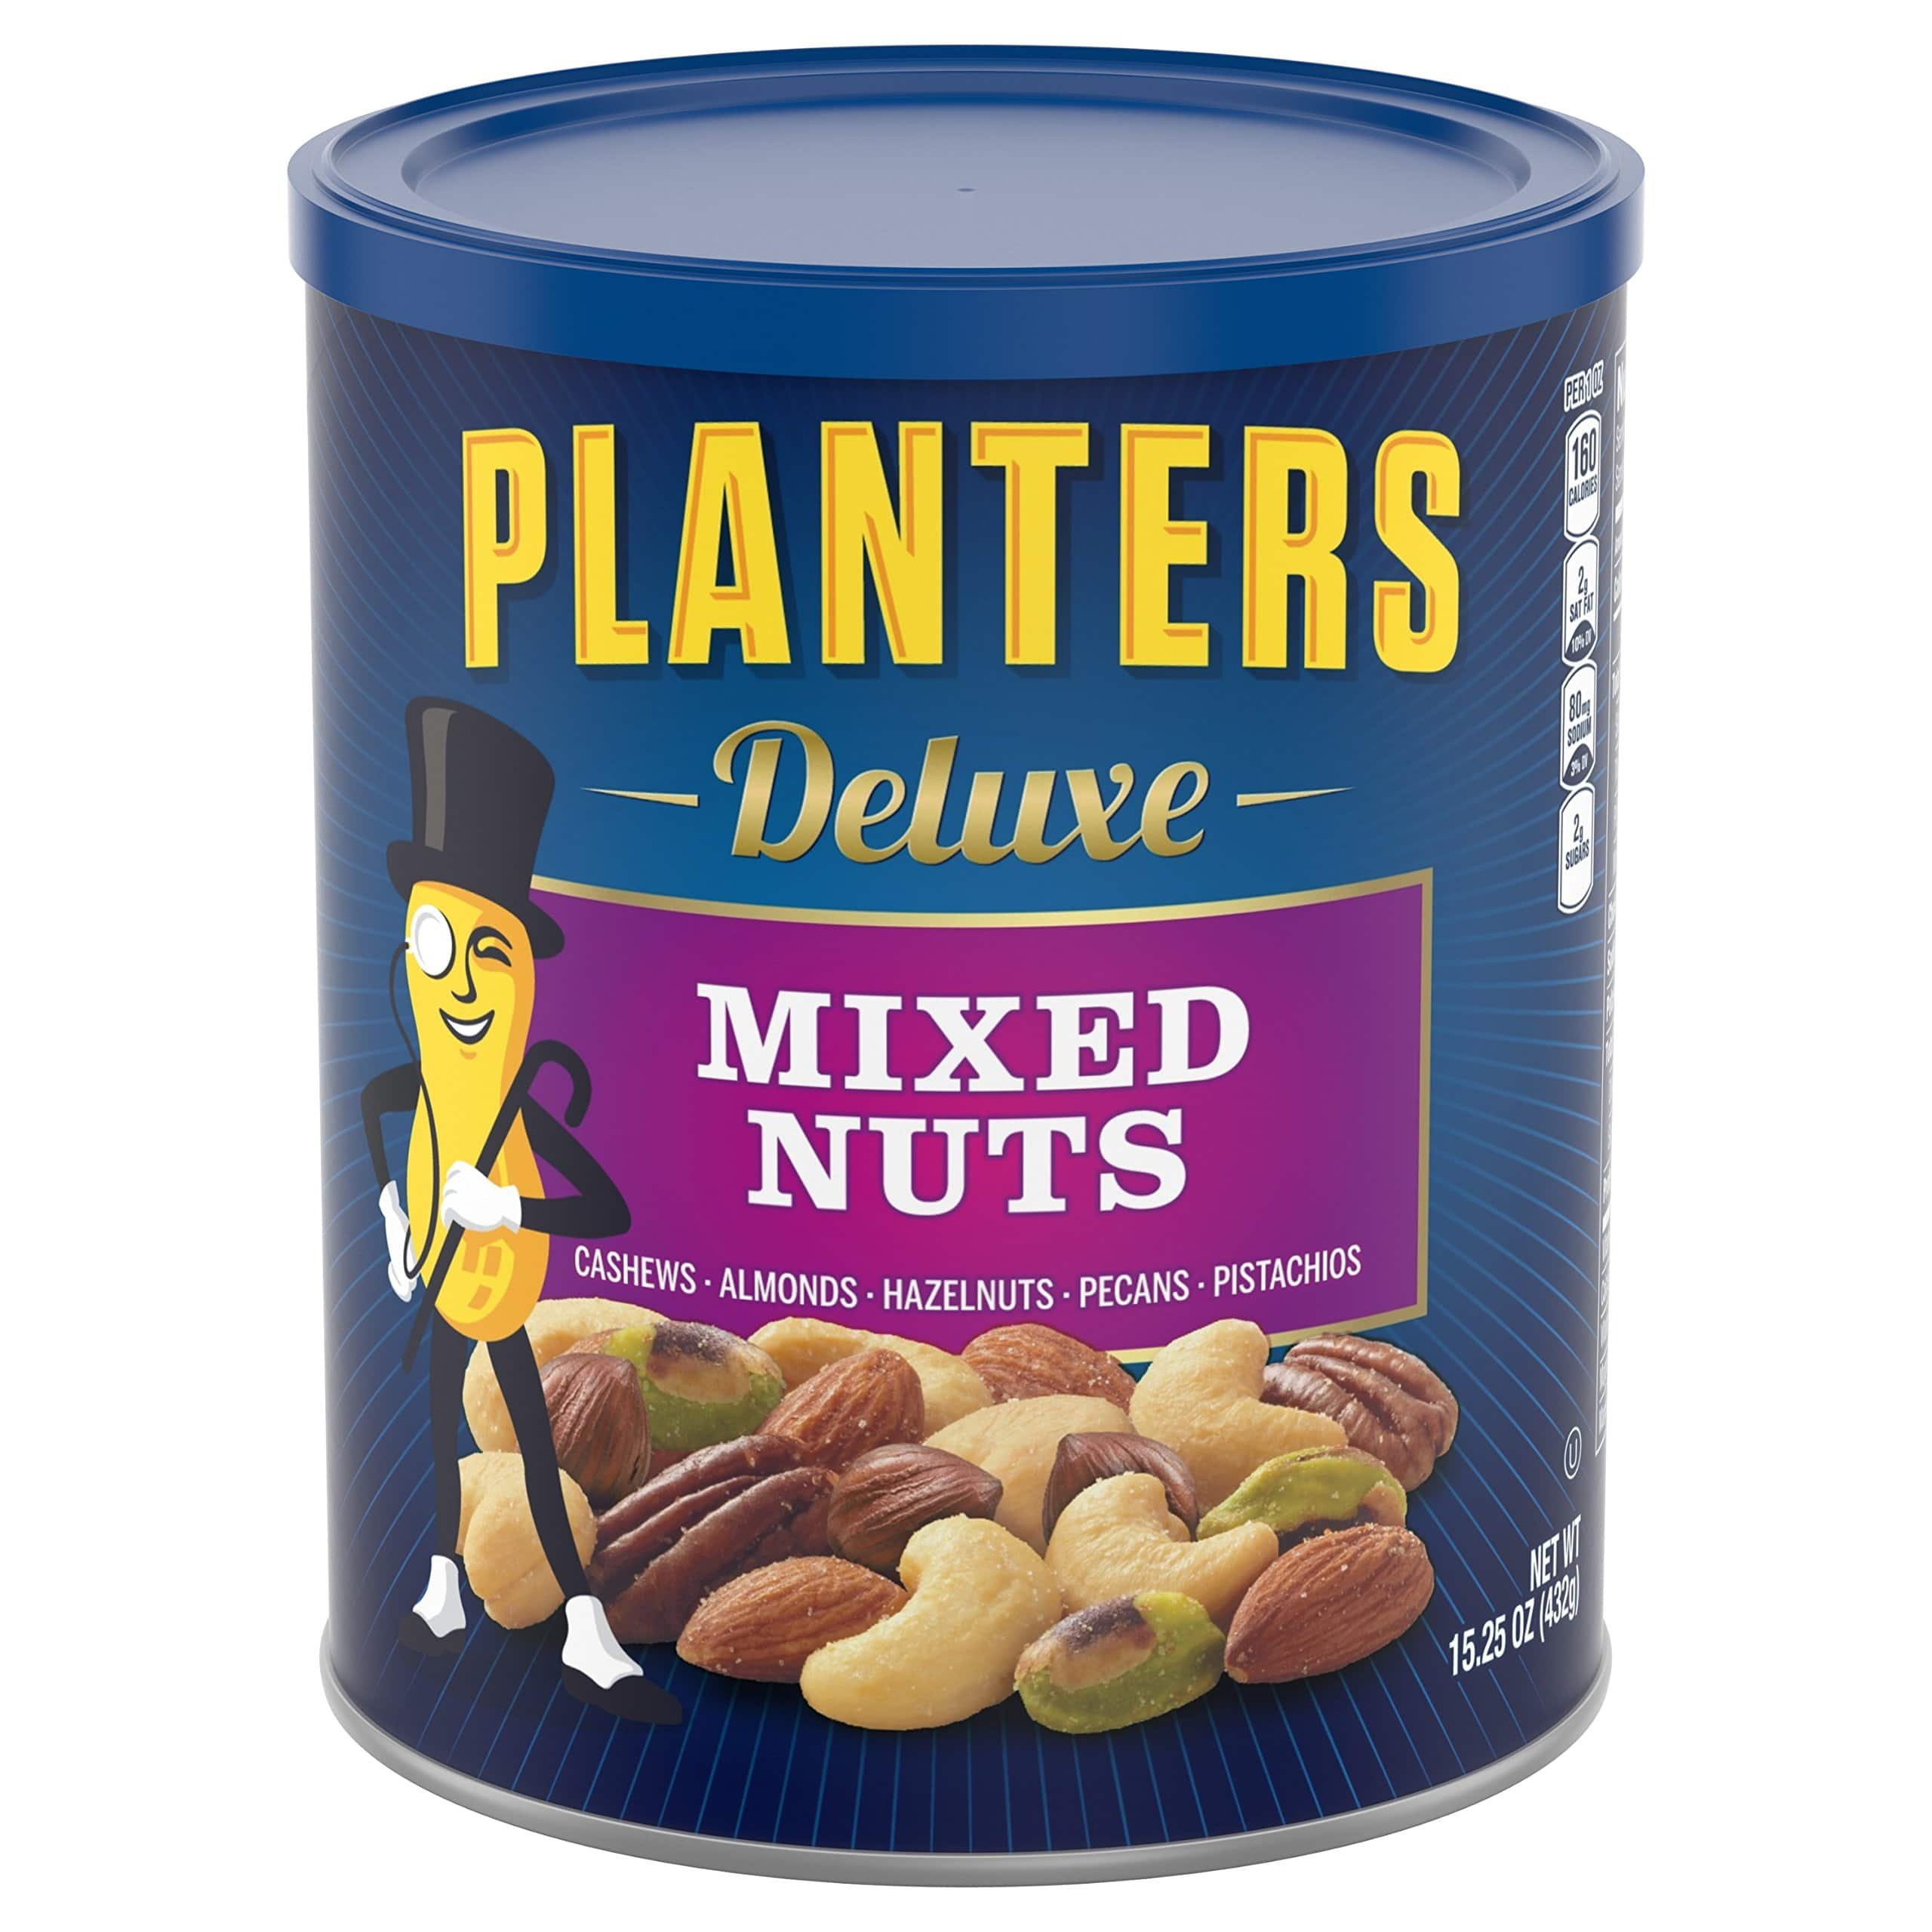 planters lightly salted mixed nuts with 11475383 Planter S Nuts 7 25oz Pecans Roasted Salted 4 80 15 25oz Deluxe Mixed Nuts 7 20 More W S S Free S H on 49866617 besides 45106231 also 21978572 moreover 10186597 Planters Peanuts Honey Roasted   Salted 34 5 Ounce Jar Pack Of 2 as well 40302 Planters Nut Rition Men S Health Mix 10 25 Ounce.